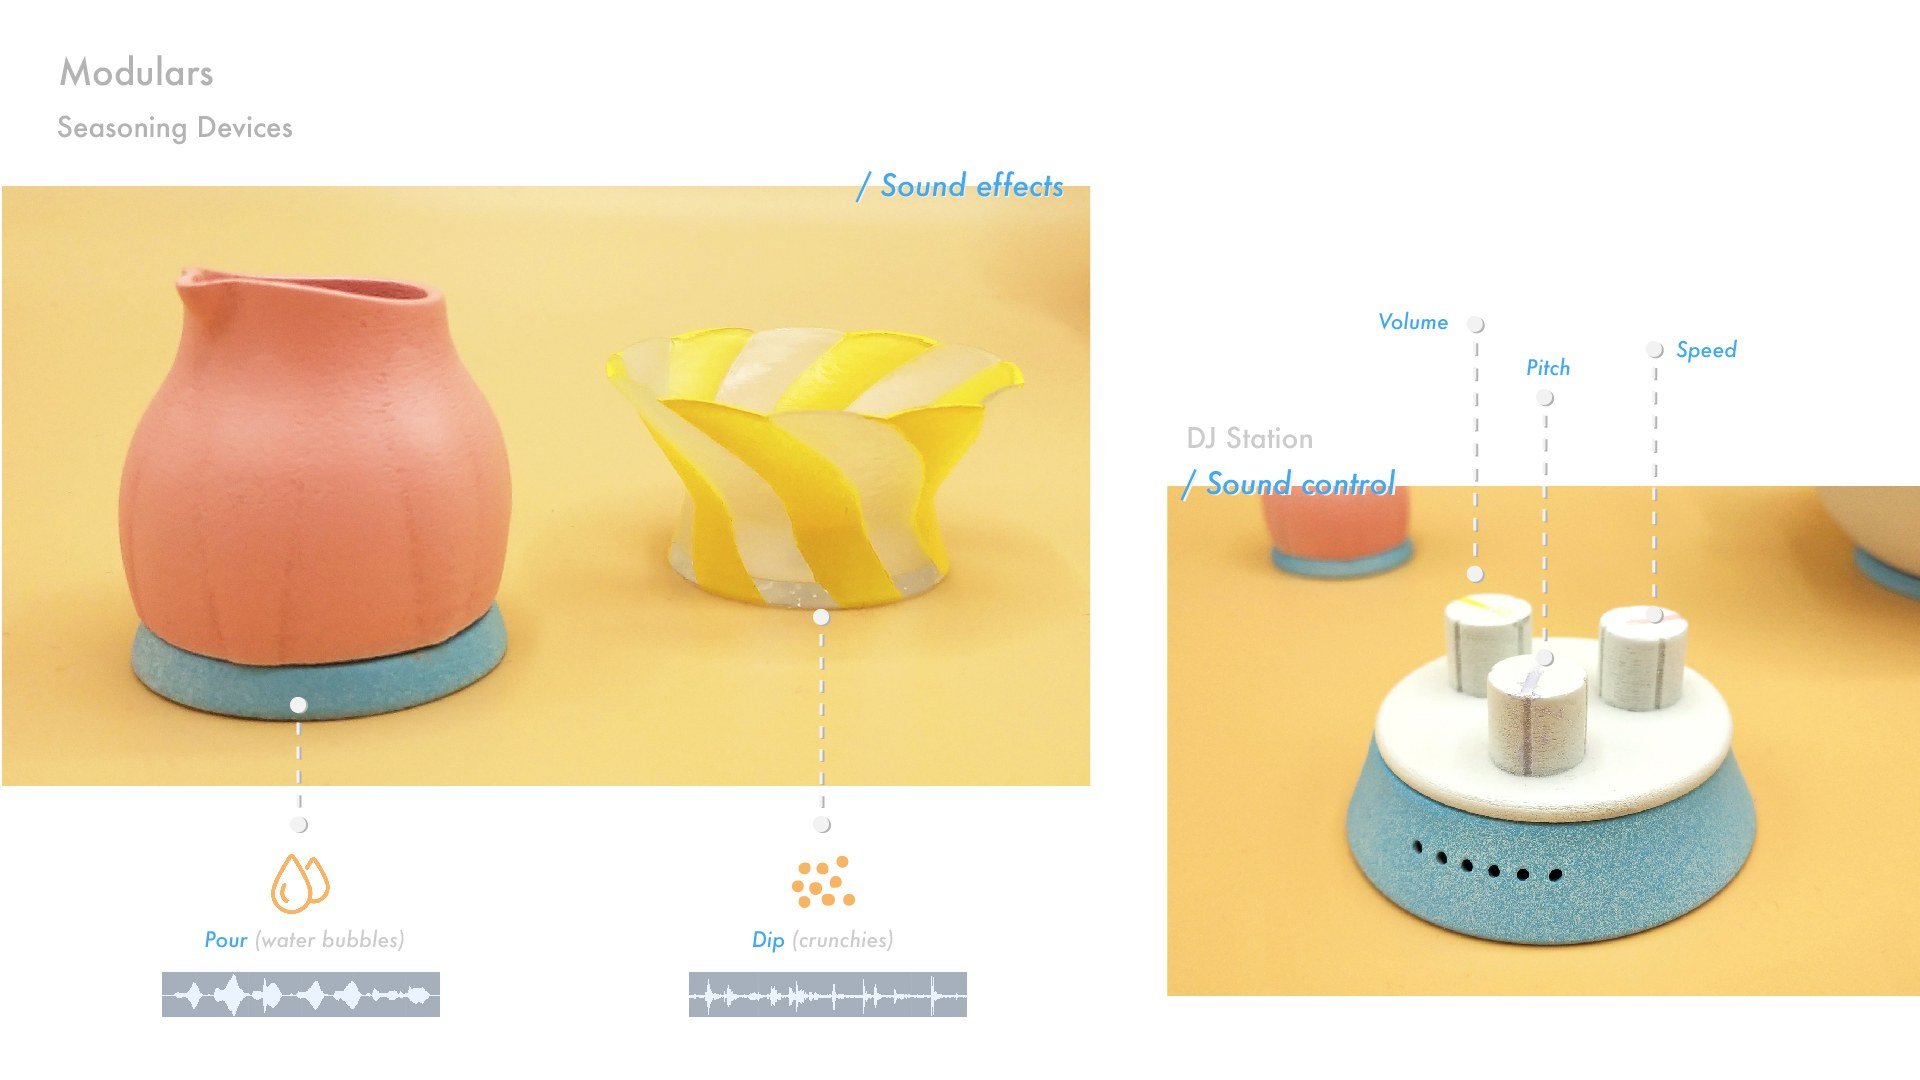 3. Seasoning Devices - Sound Effects